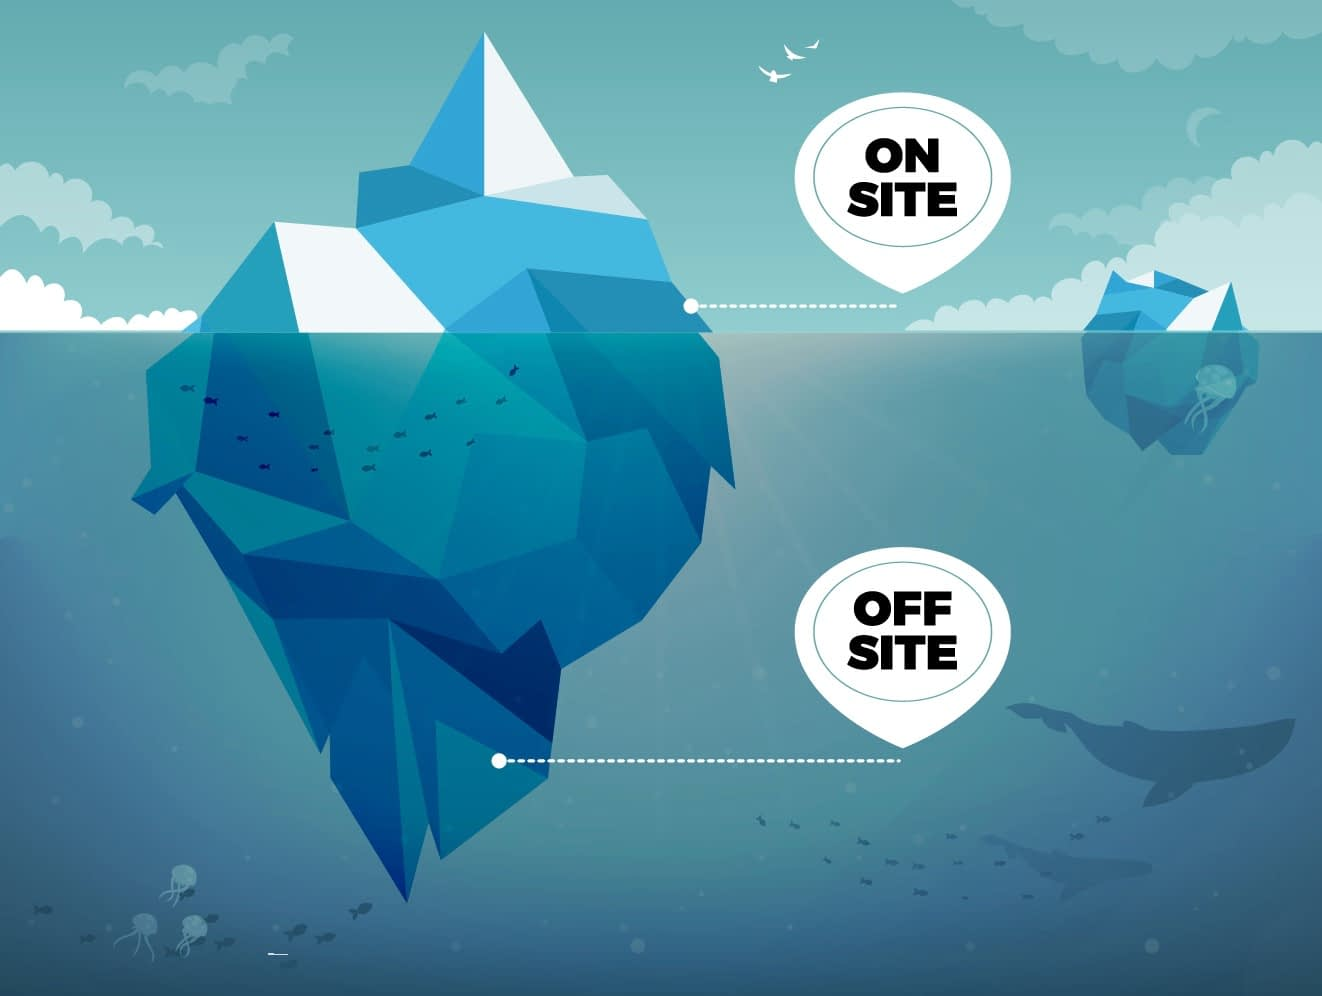 onsiteVsOffsite - Differences between On-Site and Off-Site SEO